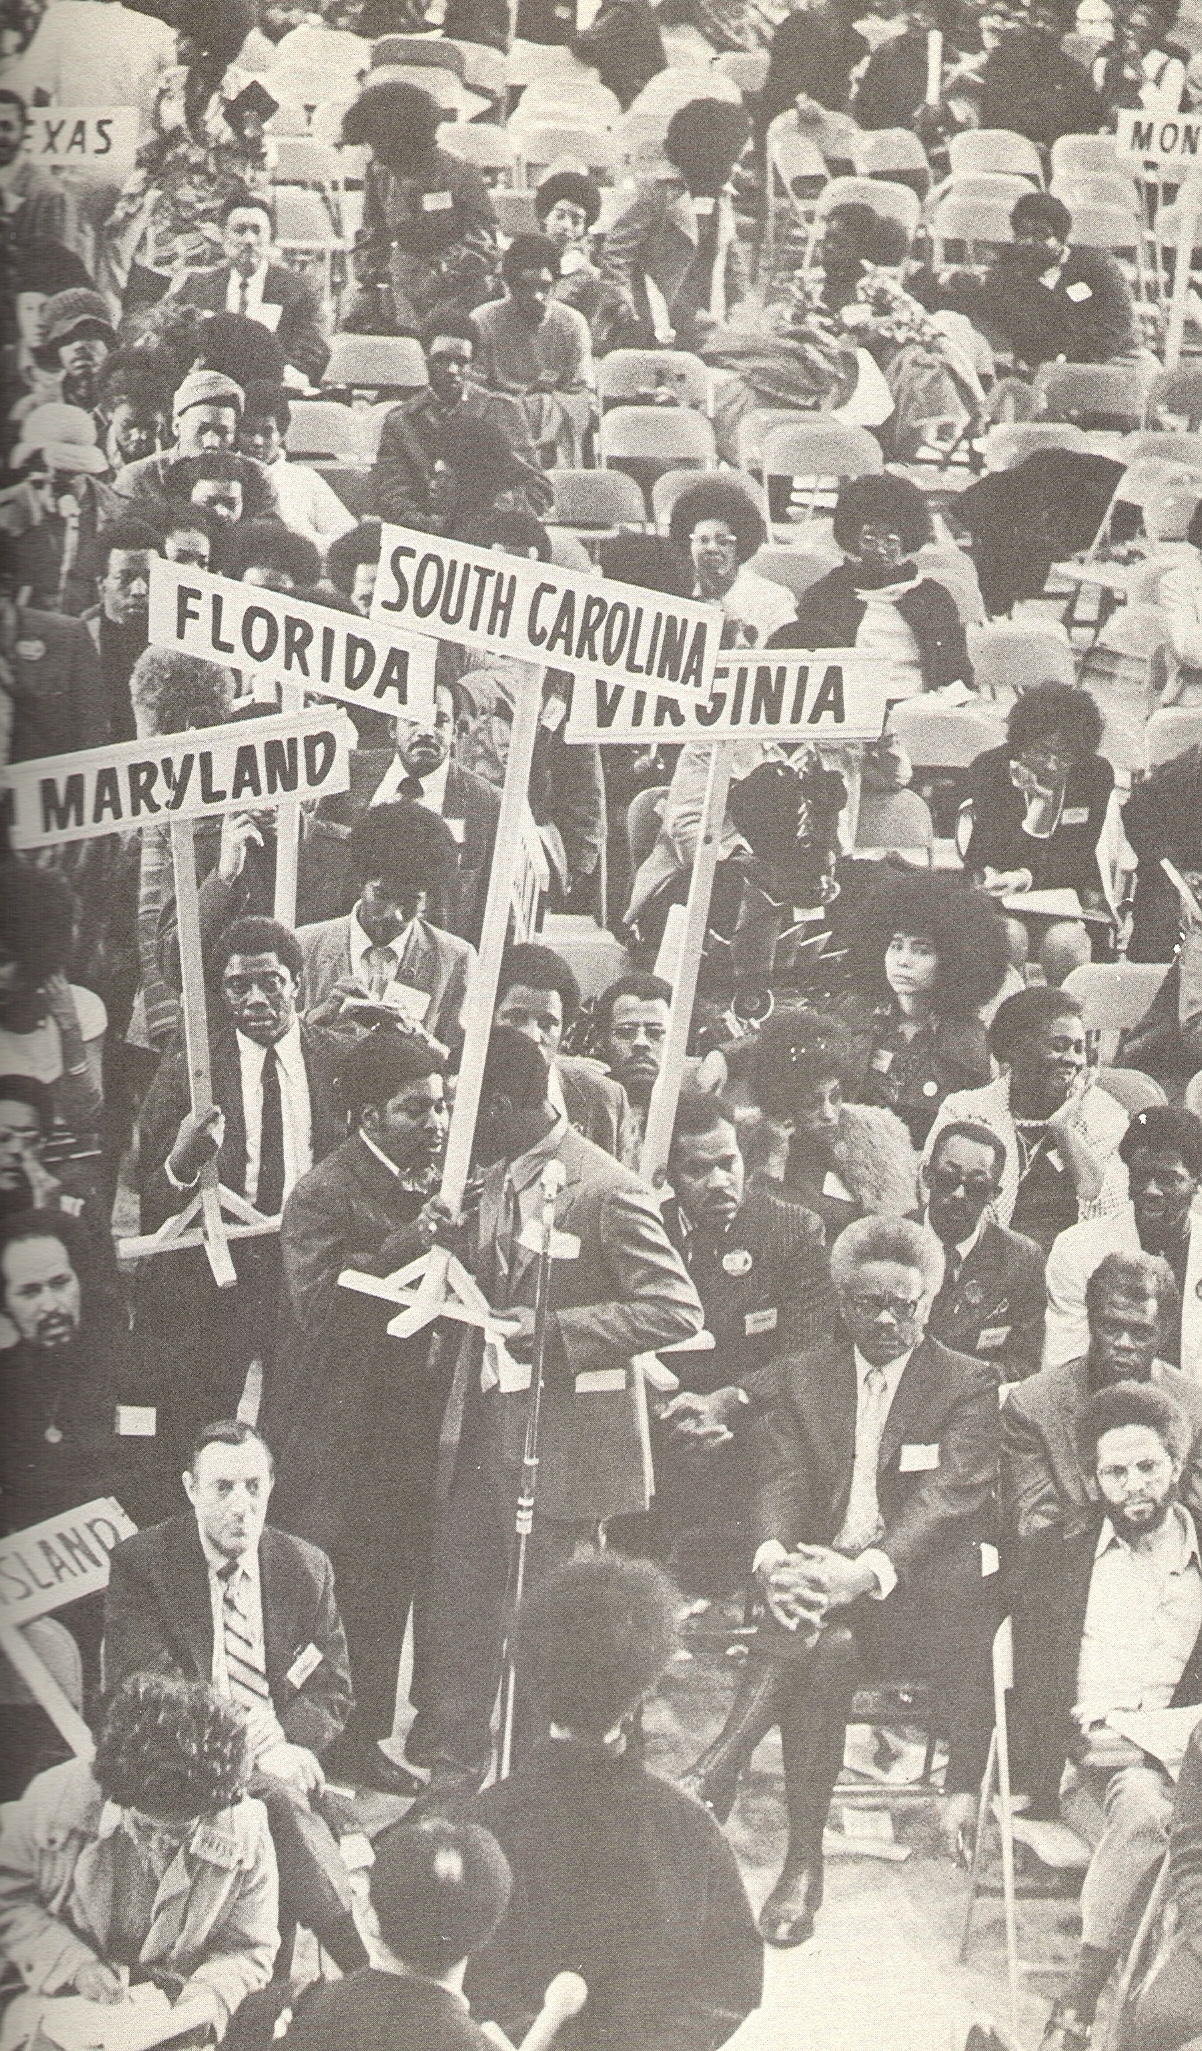 Delegates at the National Black Political Convention